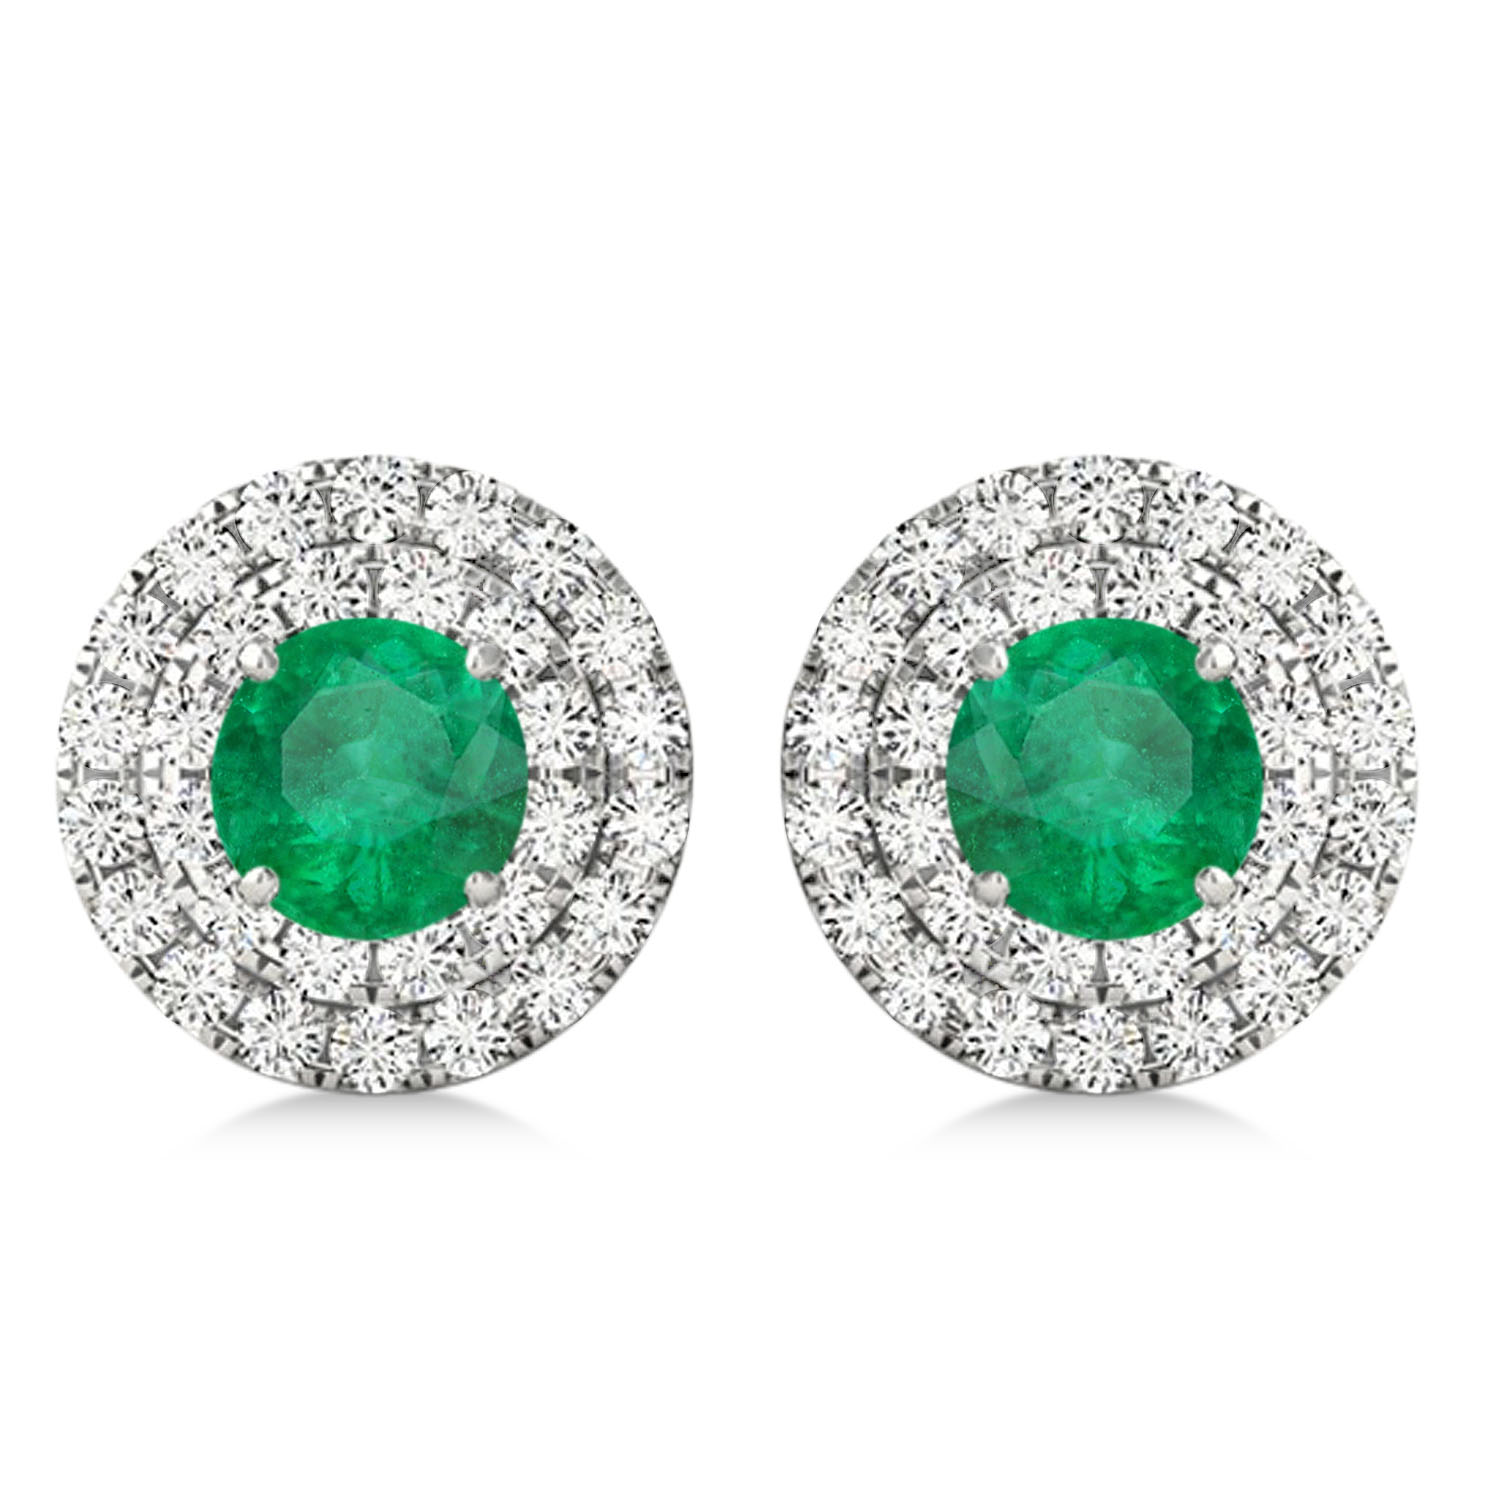 Round Double Halo Diamond & Emerald Earrings 14k White Gold 1.41ct